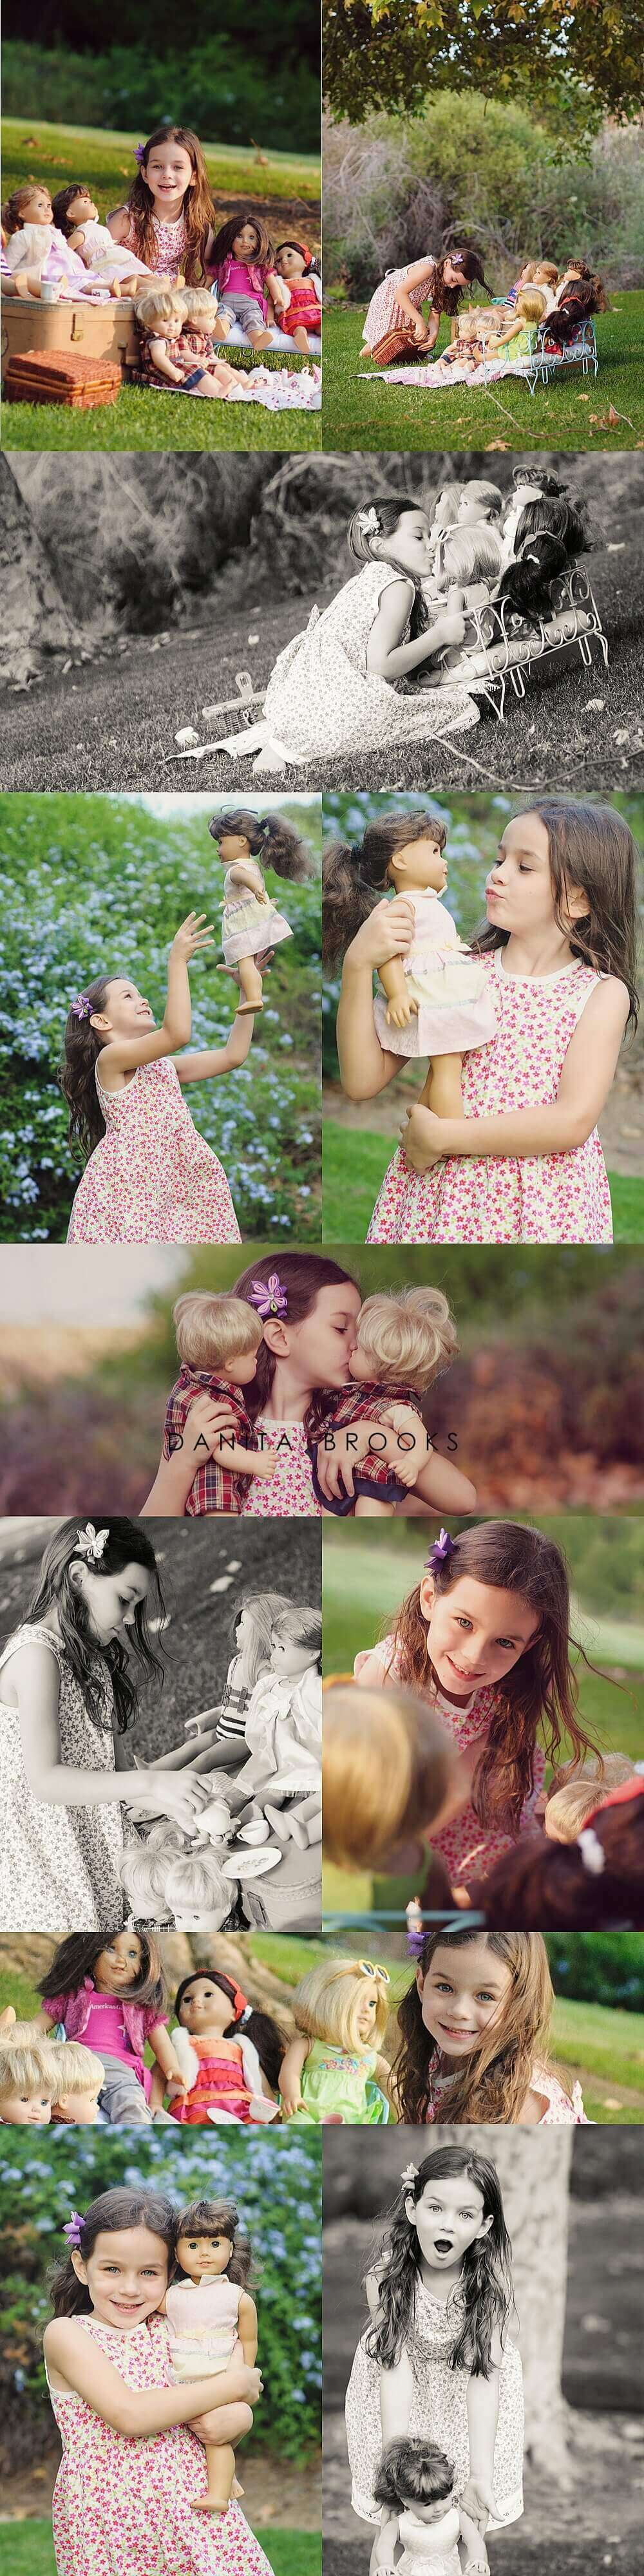 American Girl Photo Session Ideas